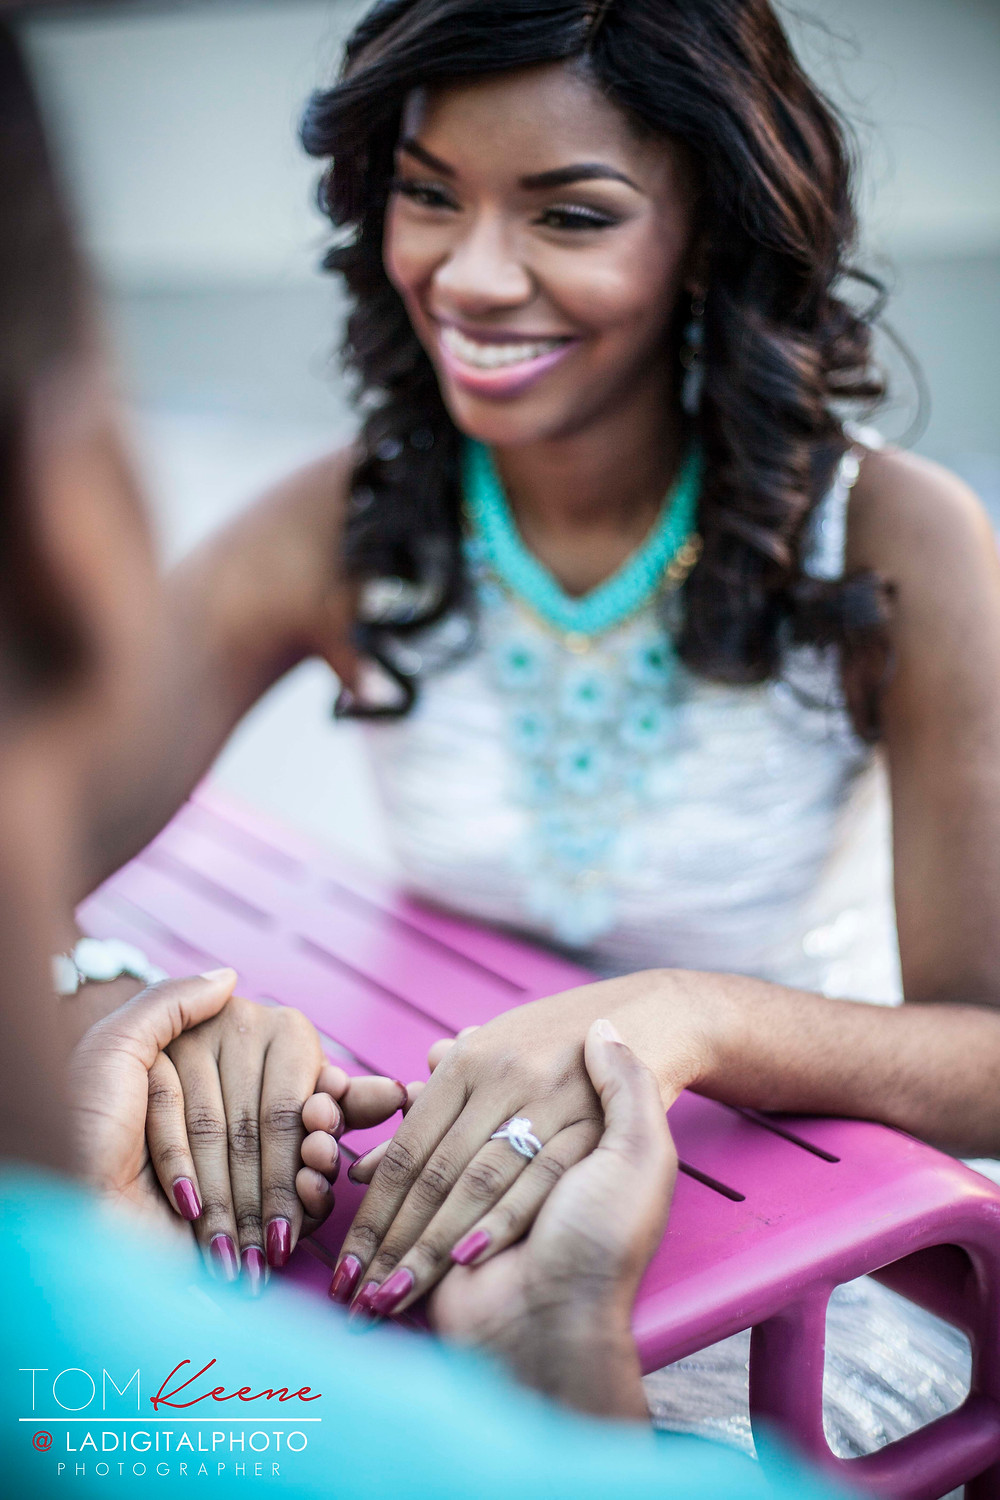 Downtown LA Grant Park Engagement Session by Tom Keene